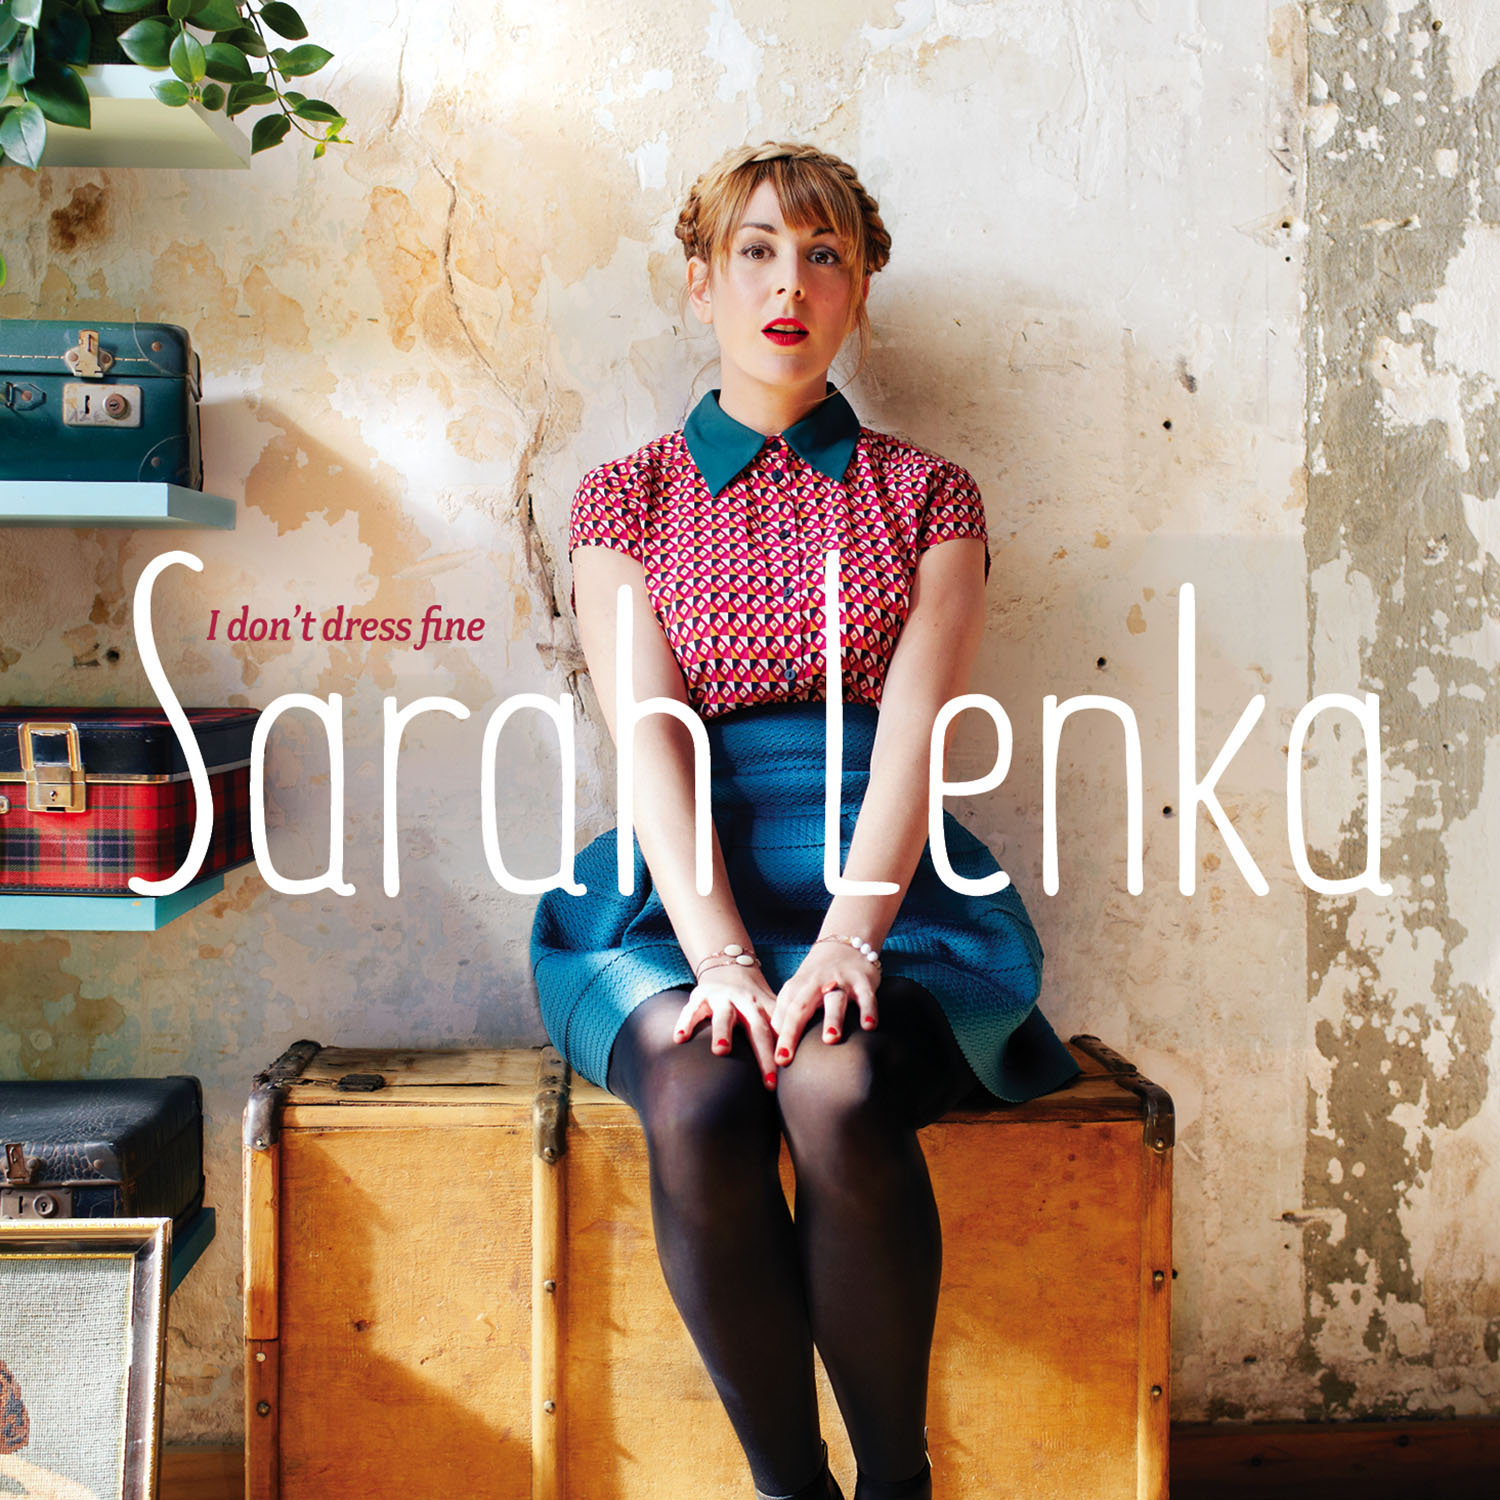 Sarah Lenka I Don't Dress Fine